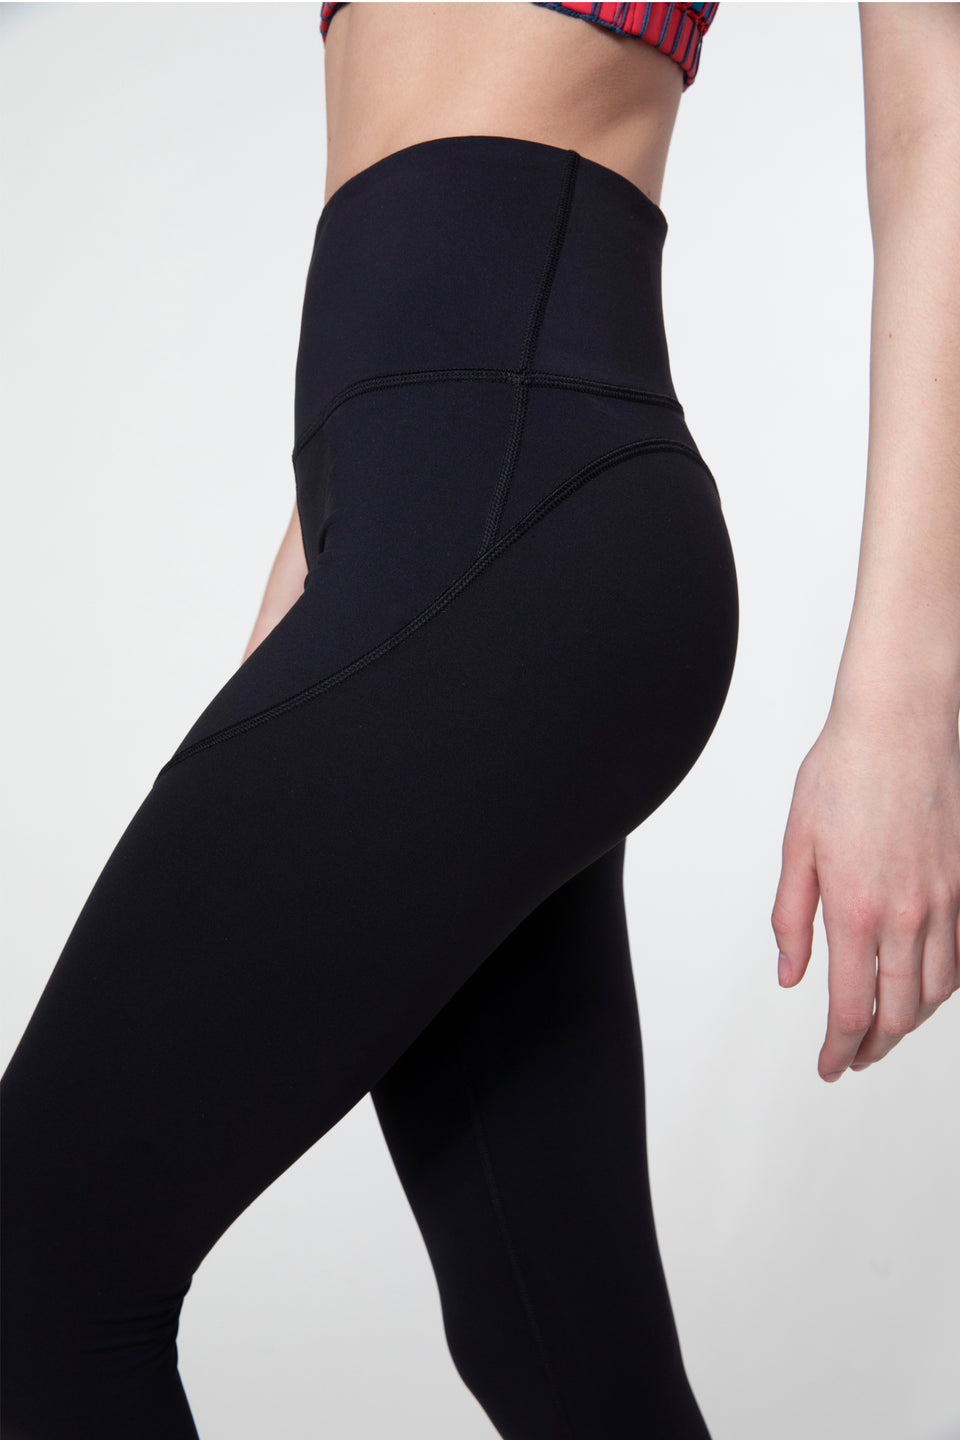 TA Slim Legging